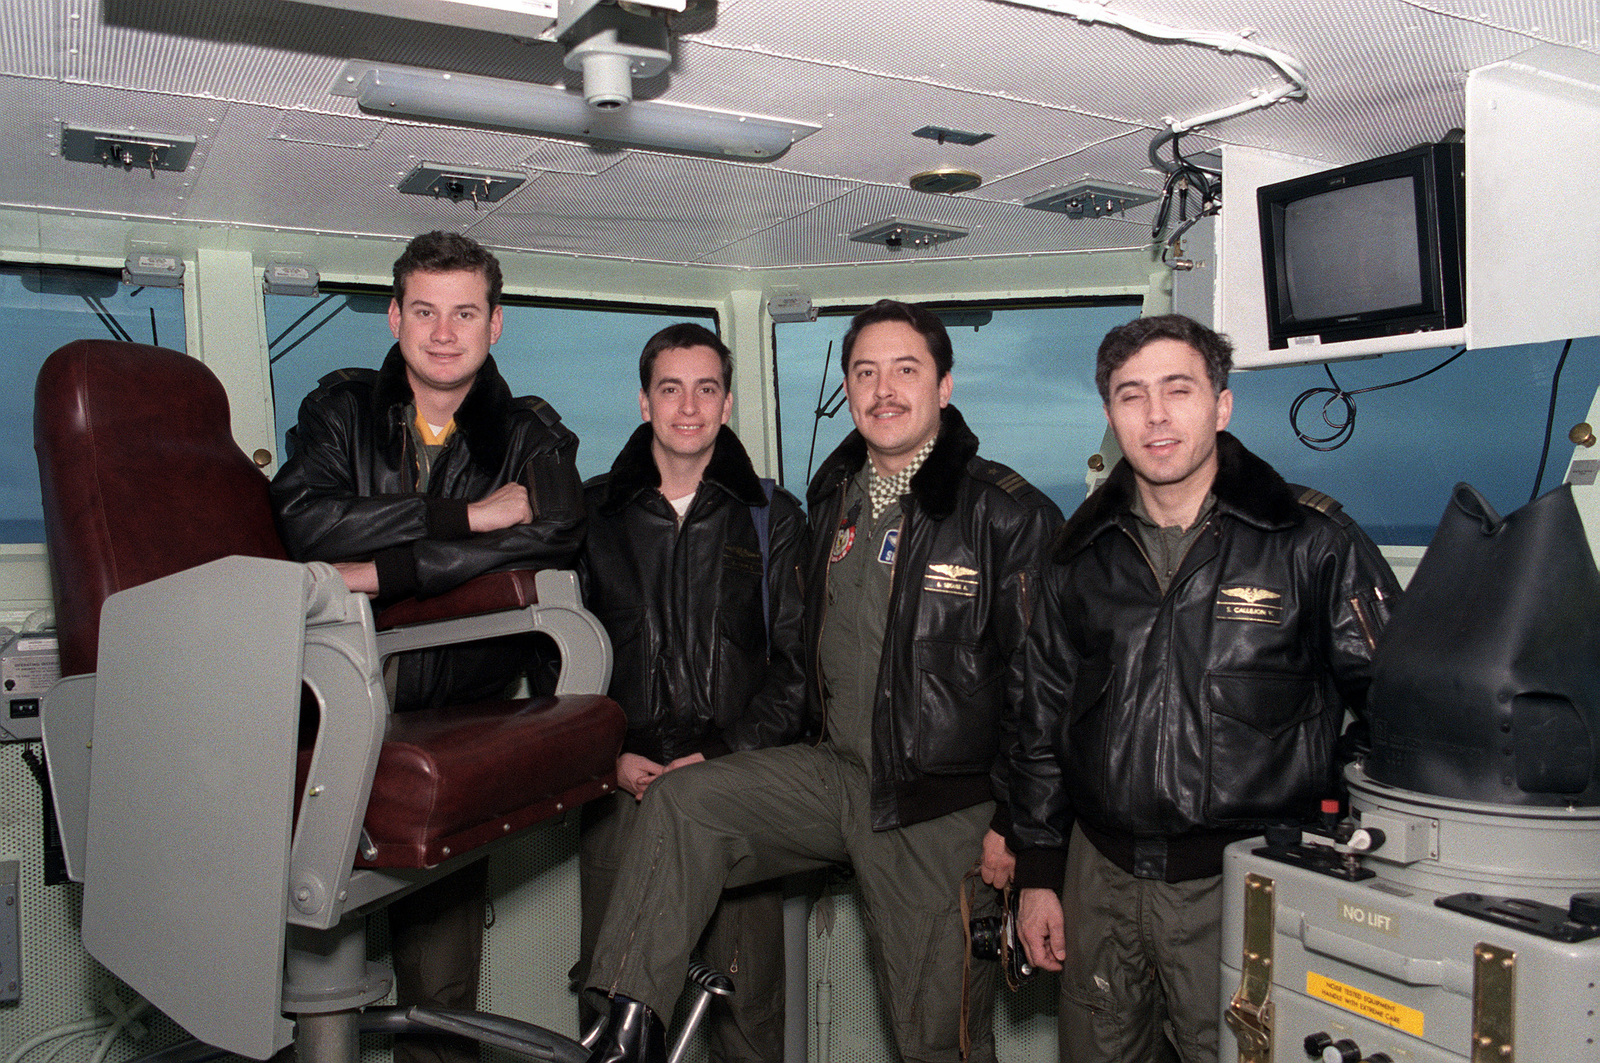 Four Chilean officers stand beside the captain's chair on the bridge during a tour of the nuclear-powered aircraft carrier USS ABRAHAM LINCOLN (CVN-72). The LINCOLN is passing along the southern coast of Chile while en route to its new home port at Alameda, California